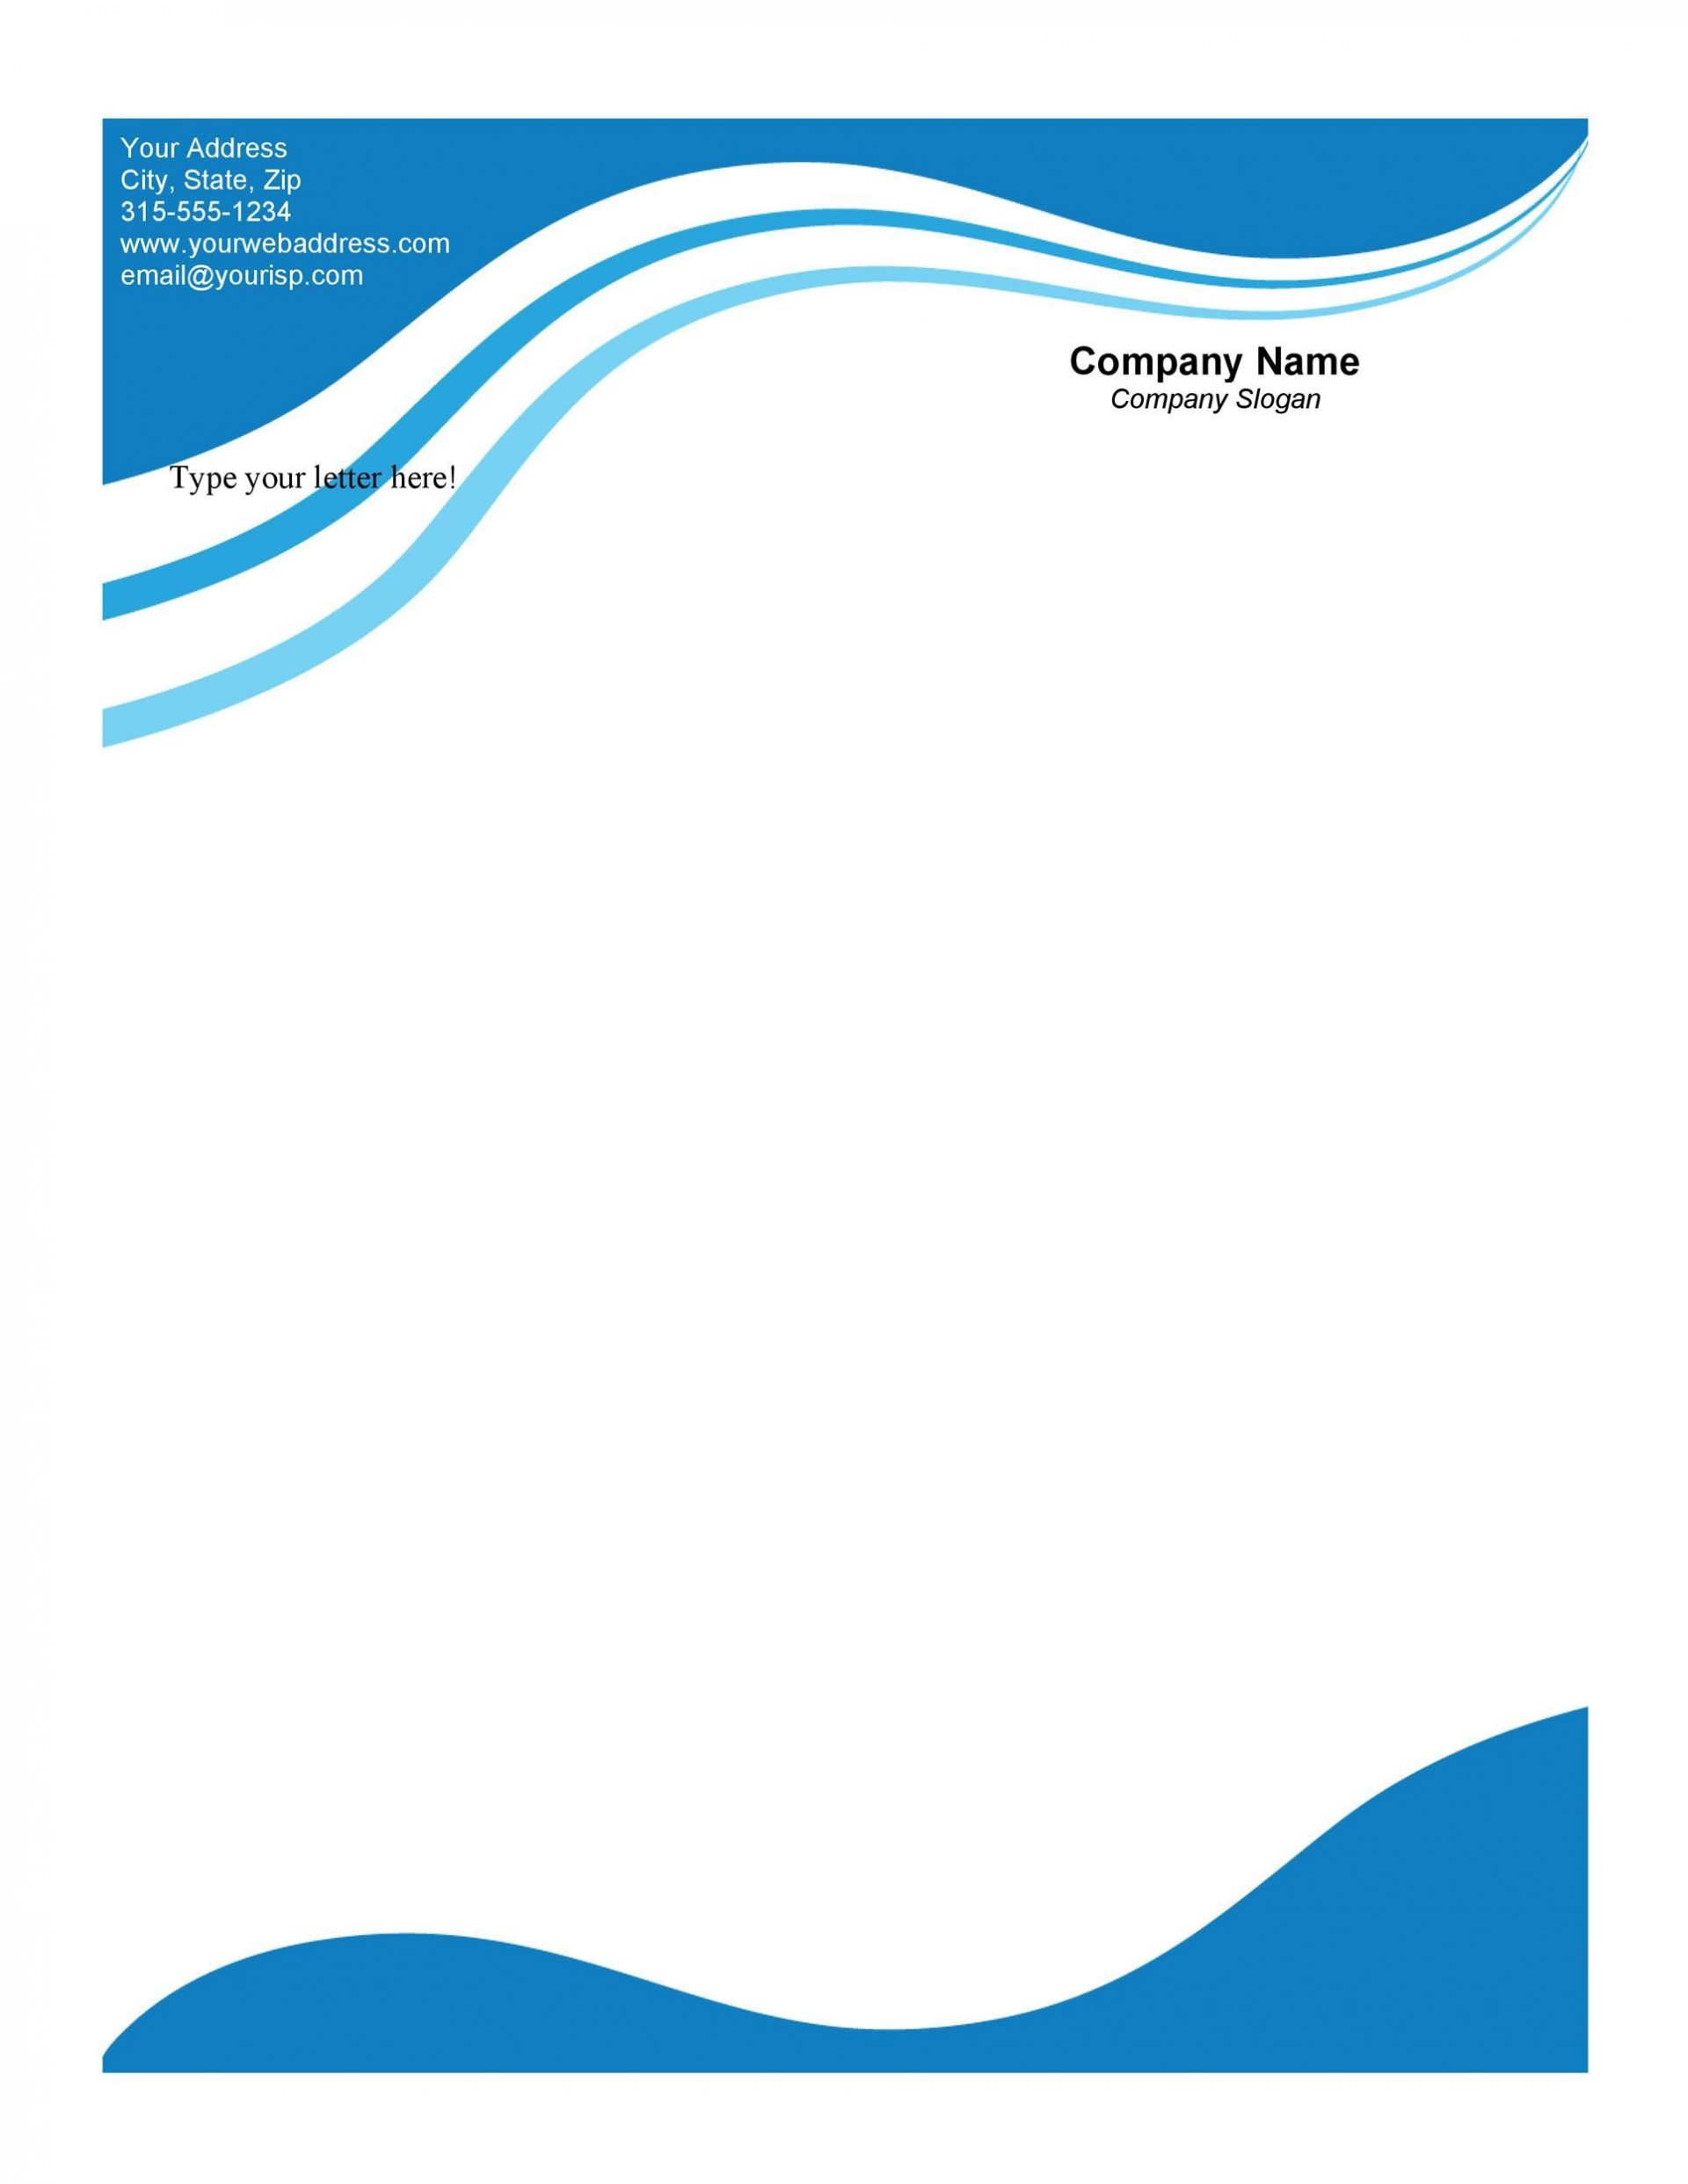 007 Excellent Letterhead Template Free Download Doc High Def  Company Format1920